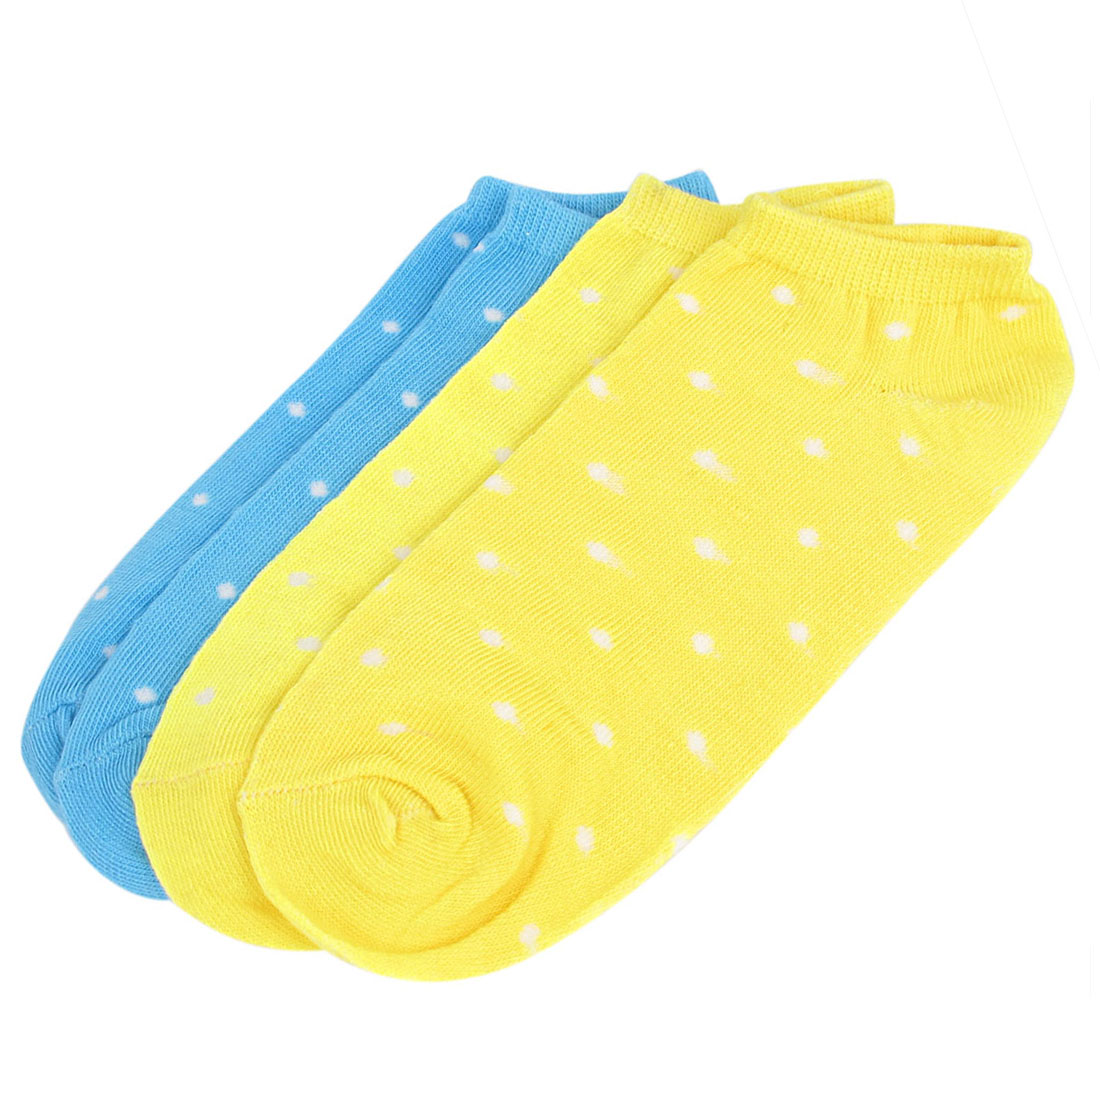 2 Pairs Blue Yellow Cotton Blends Elastic Fabric Stretch Cuff Wave Point Pattern Short Low Cut Ankle Mesh Socks for Ladies Women